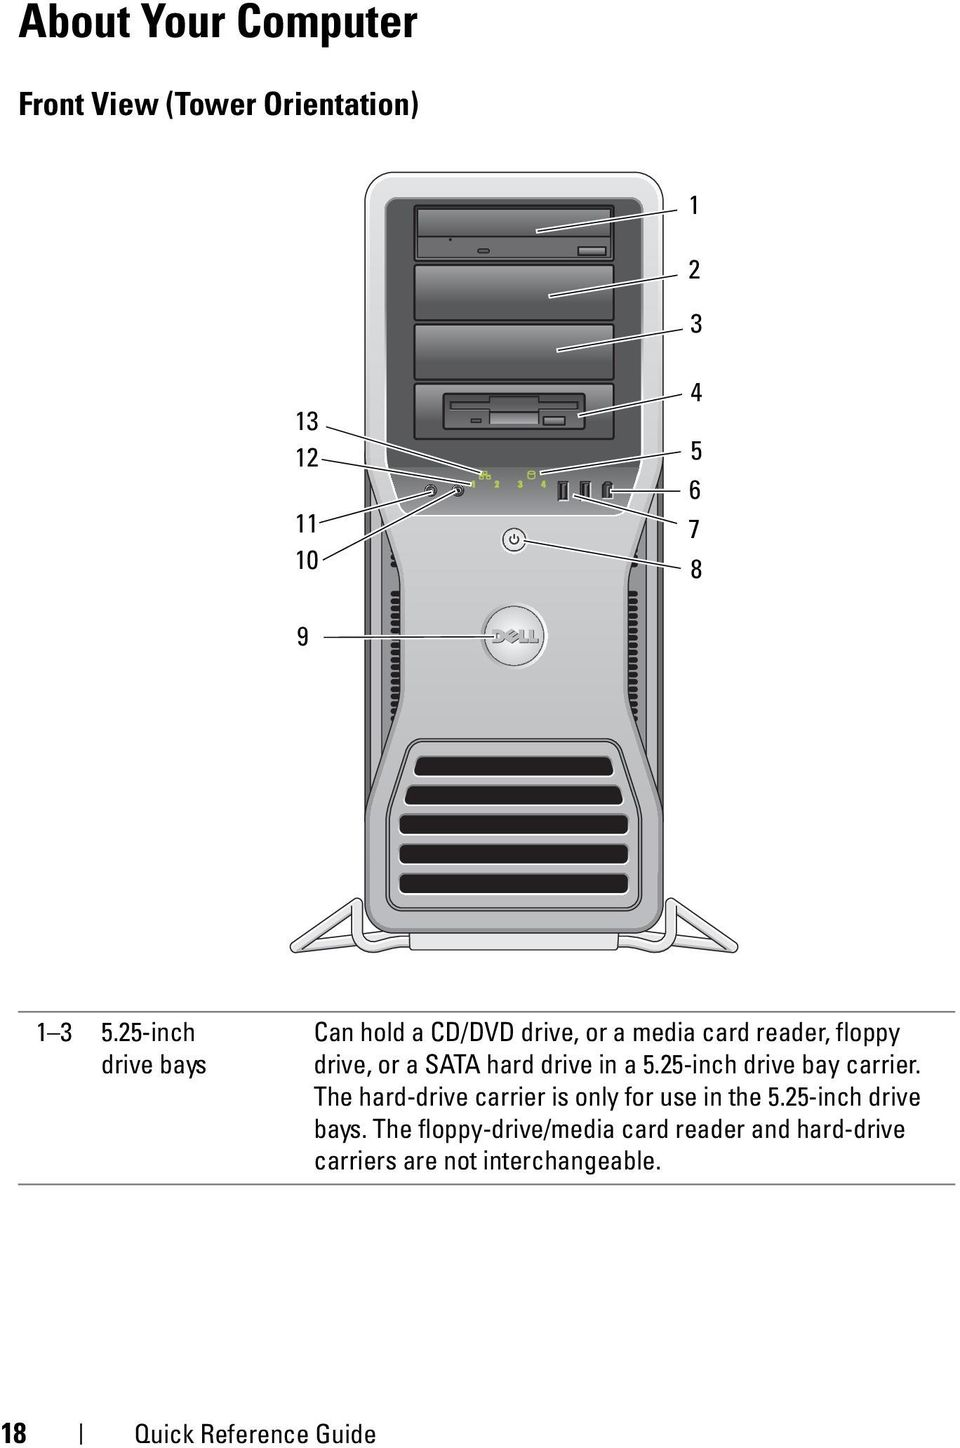 drive in a 5.25-inch drive bay carrier. The hard-drive carrier is only for use in the 5.